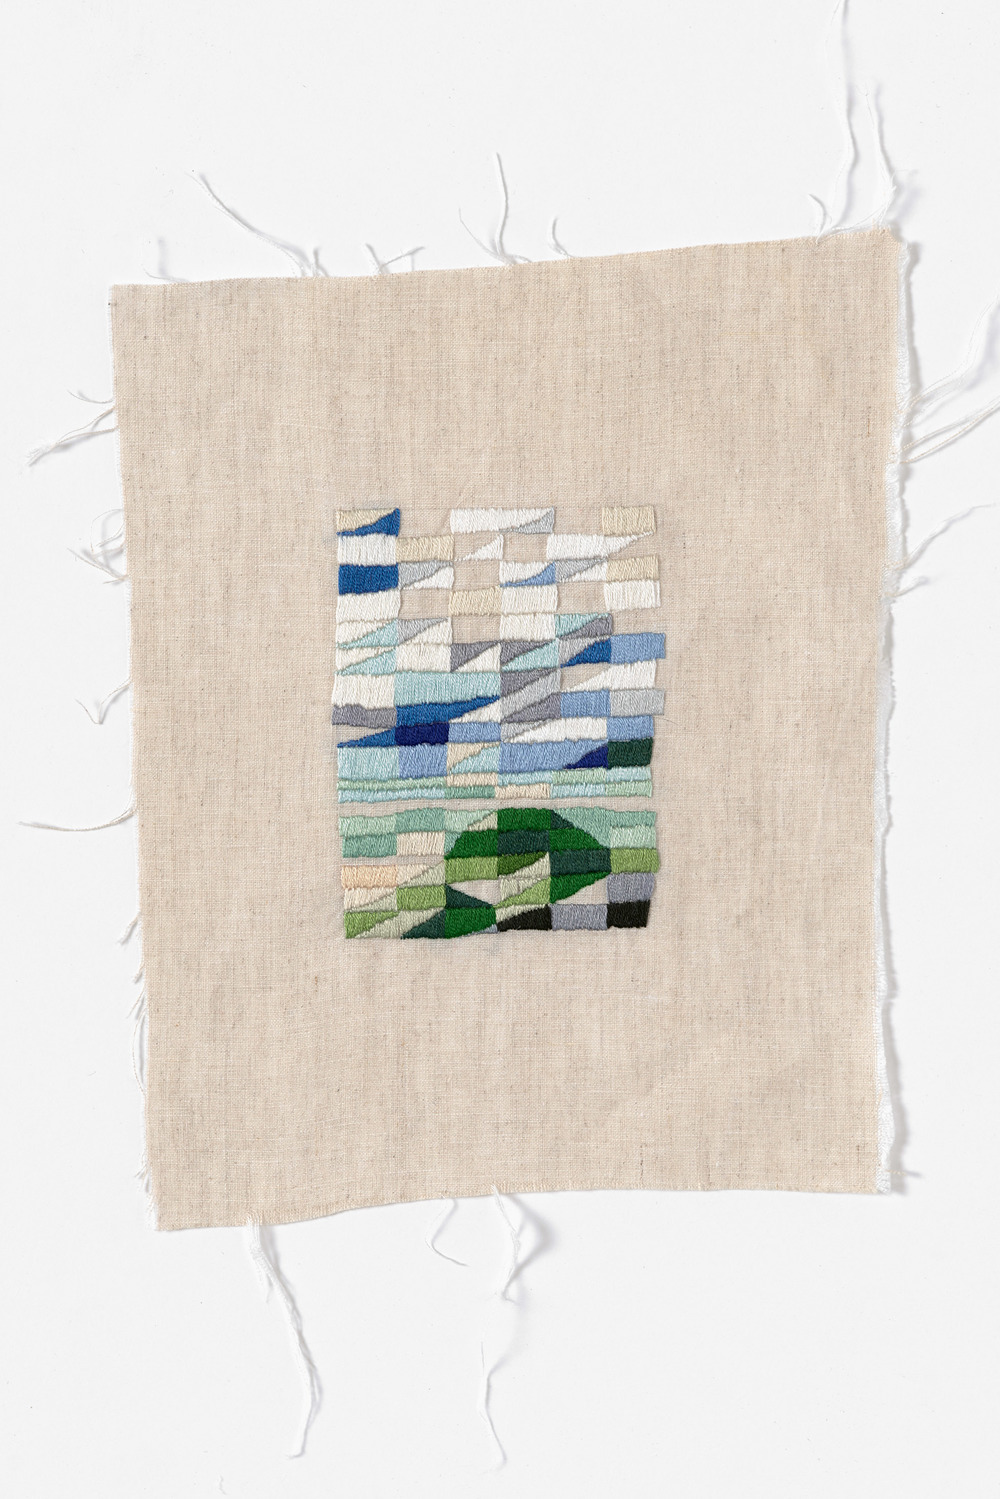 Carpark, Venus Bay  2015 Cotton thread on linen 21 x 27cm